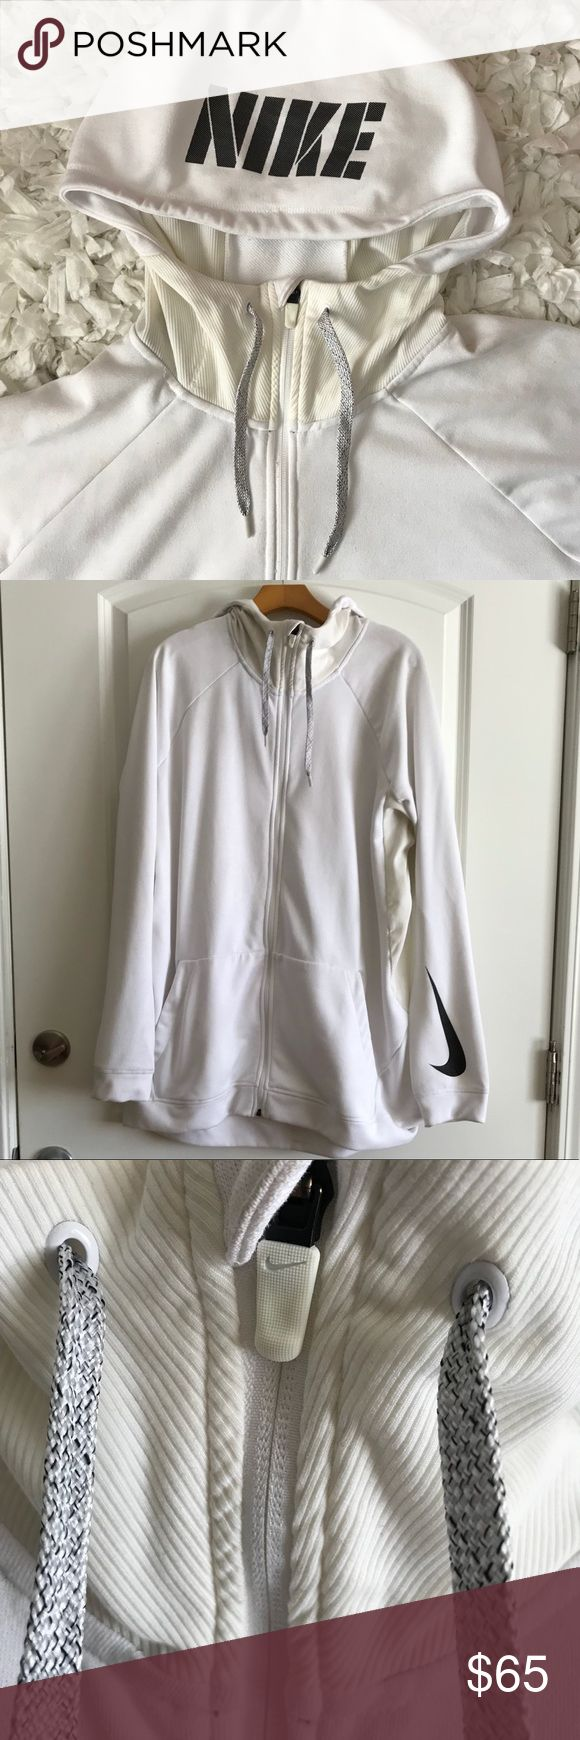 Nike Basketball White Zip Up Hoodie With Pockets Nike Zip Up hoodie with pockets. High neck detail. Nike swoosh on sleeve. Nike logo on hood. In excellent condition. Nike Jackets & Coats